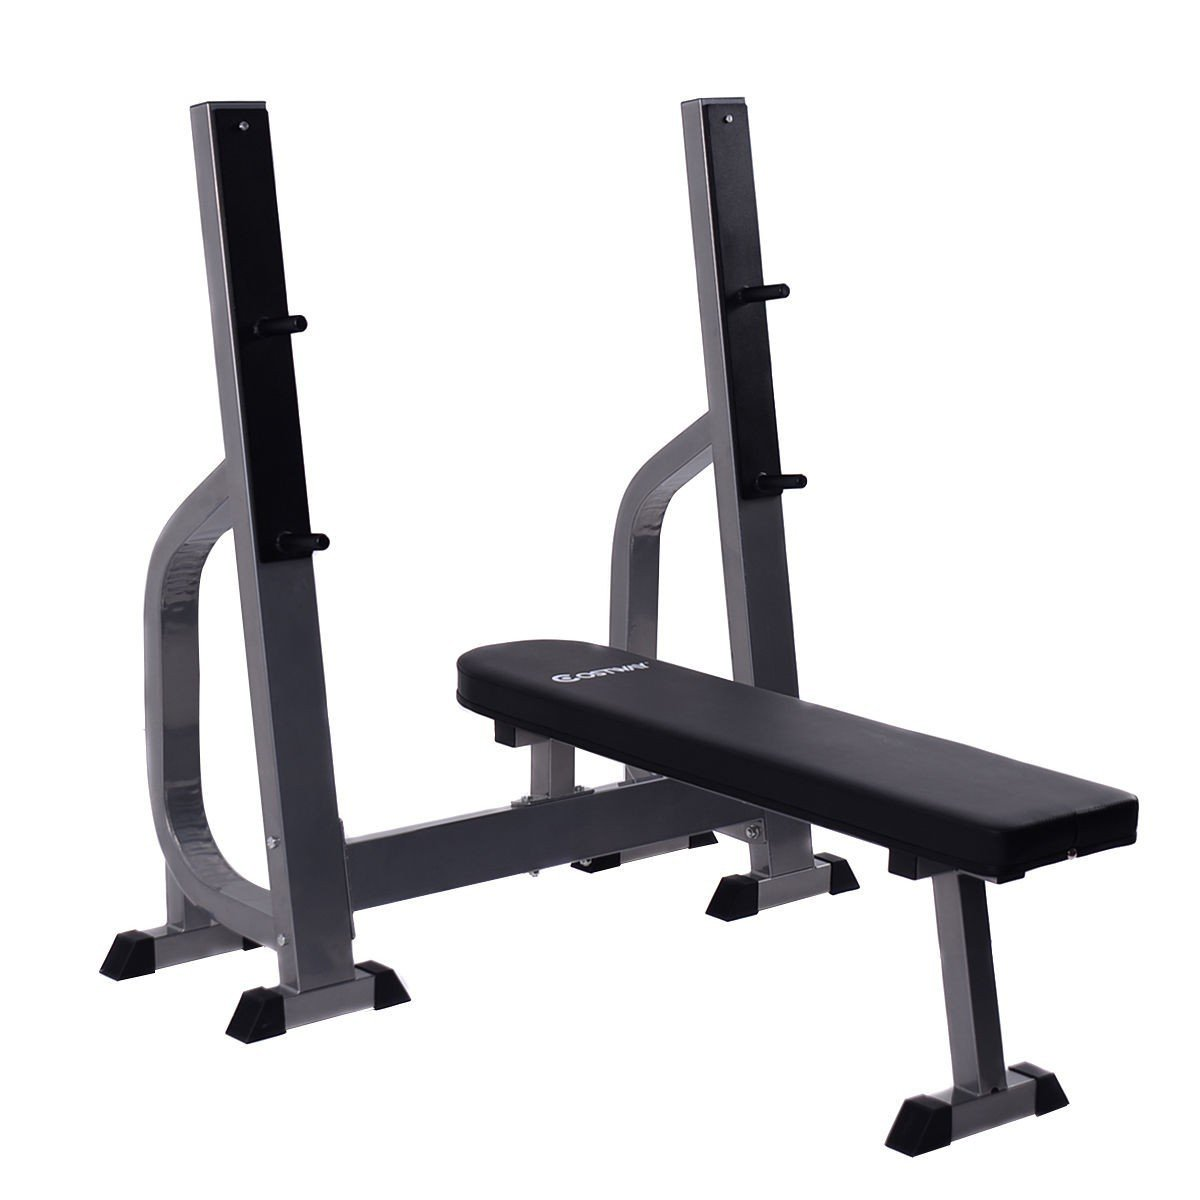 Costway Weight Lifting Flat Bench Fitness Workout Sit Up Board Home Exercise Gym